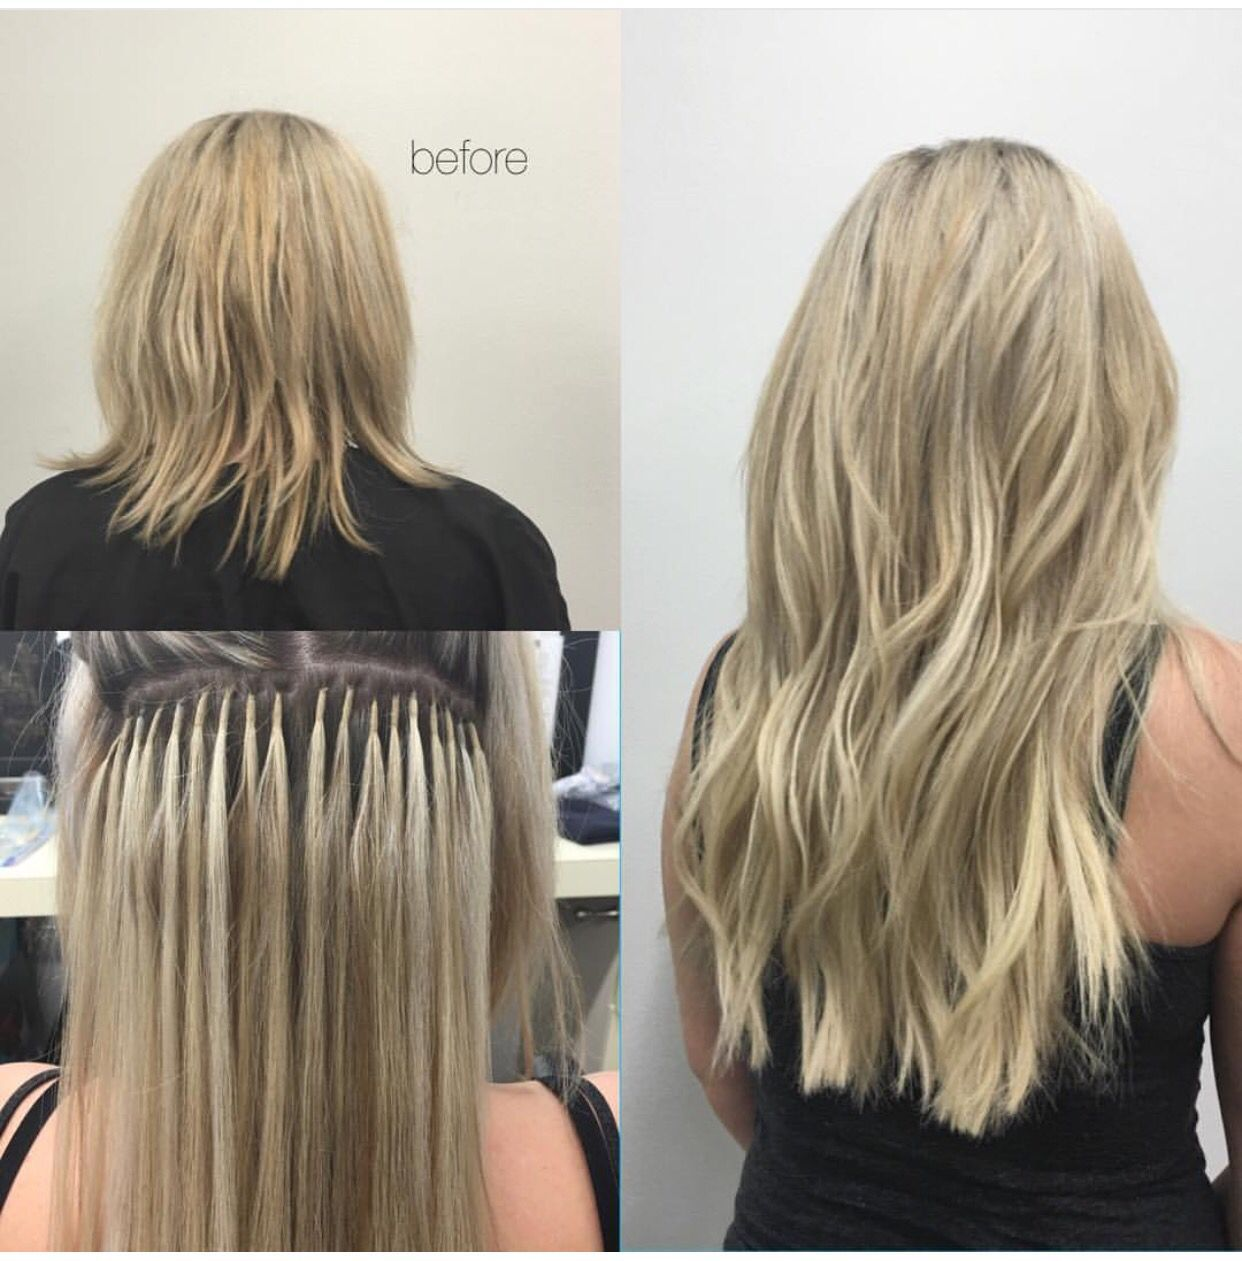 Great Lengths Hair Extensions By Cassandra At Salon Entrenous